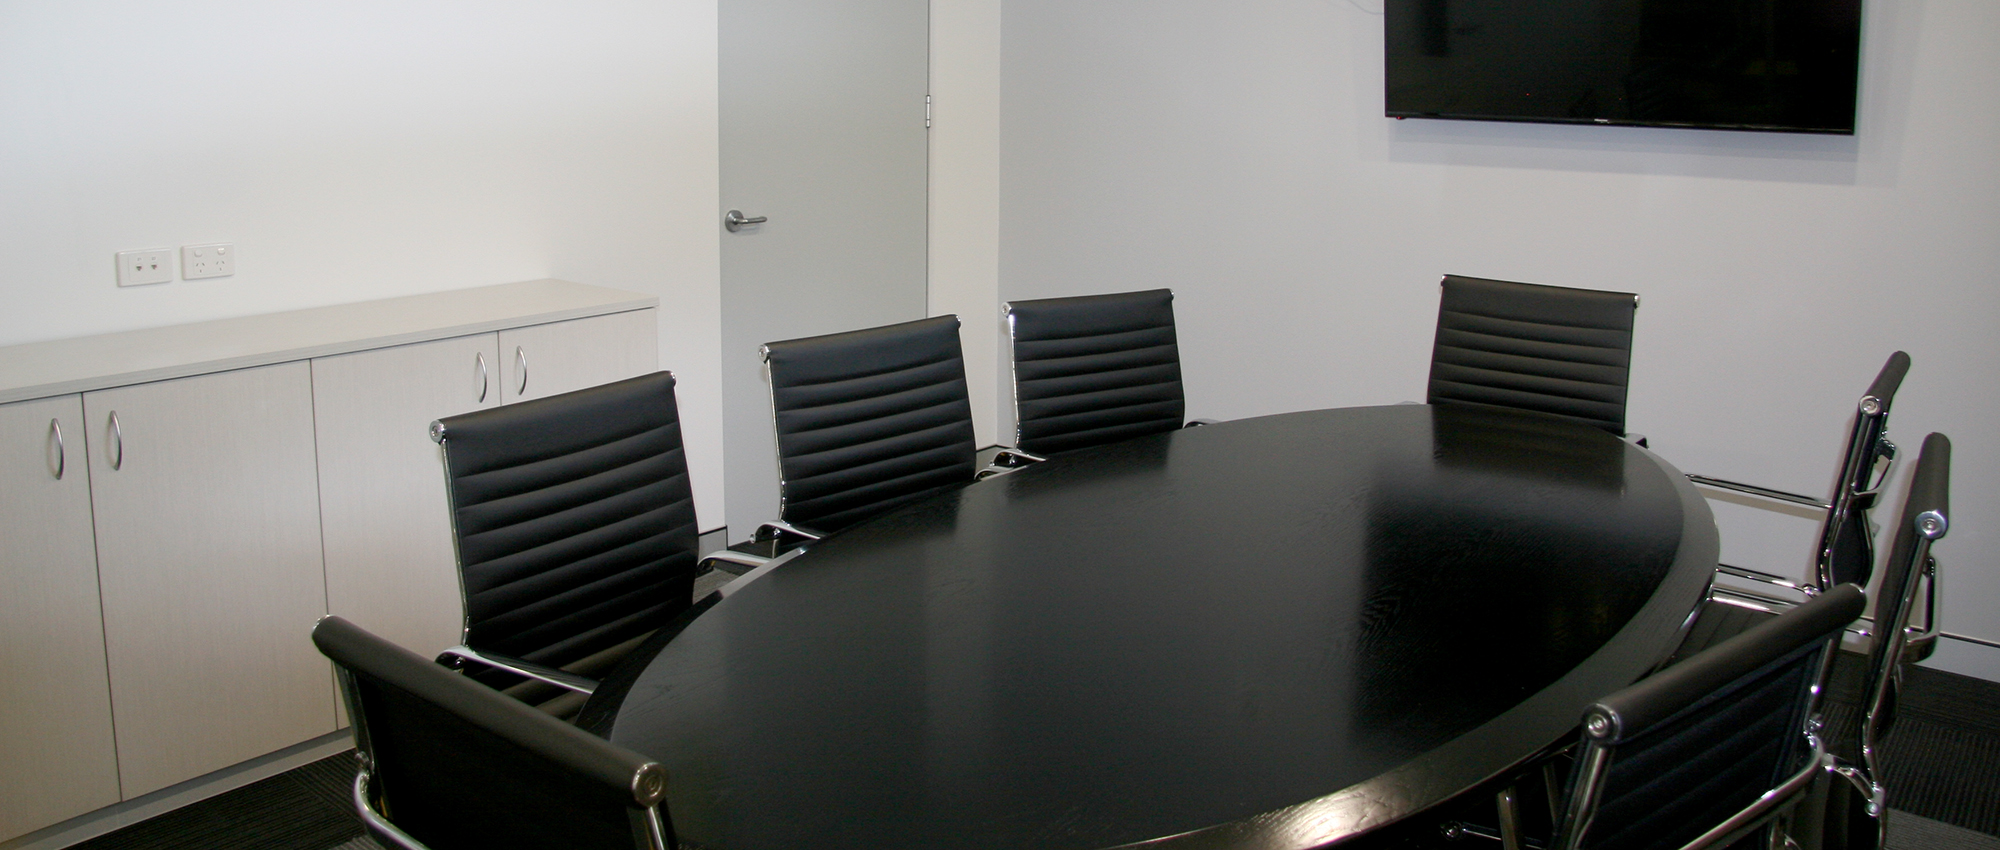 Office Plus Perth Meeting Room_meetingroom_meeting chair_ tv mount